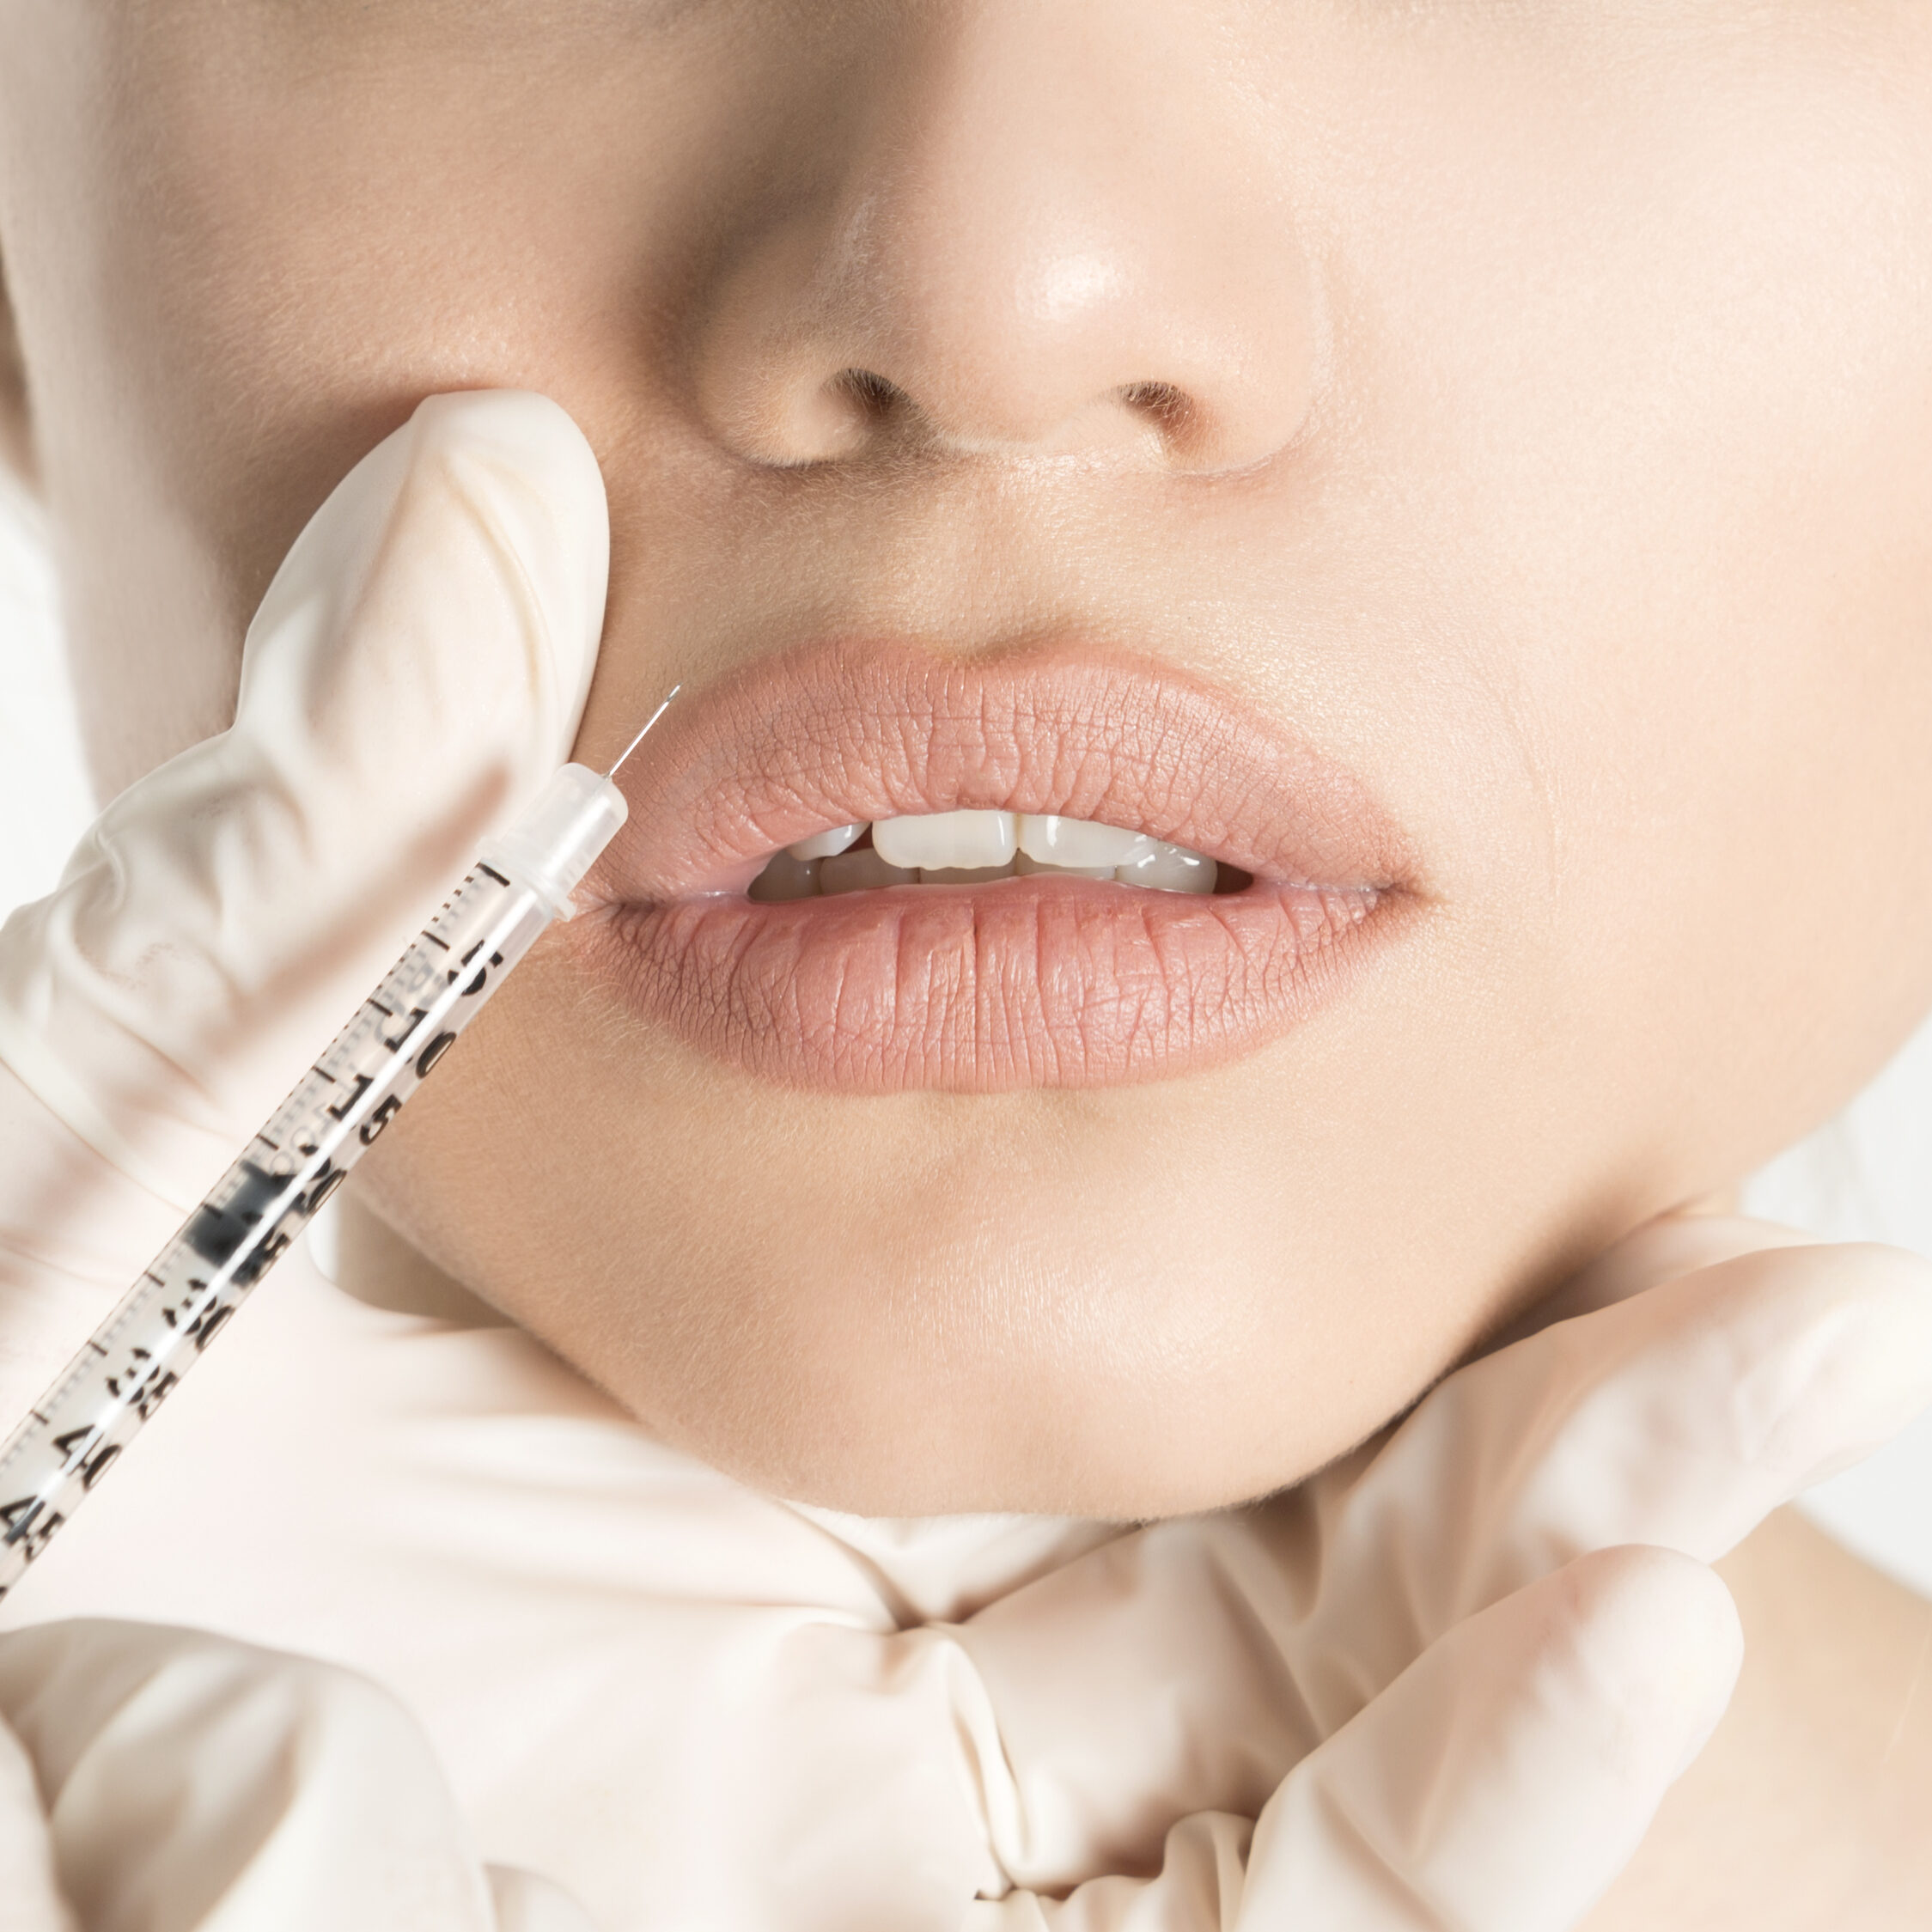 Woman having filler injected into her lips